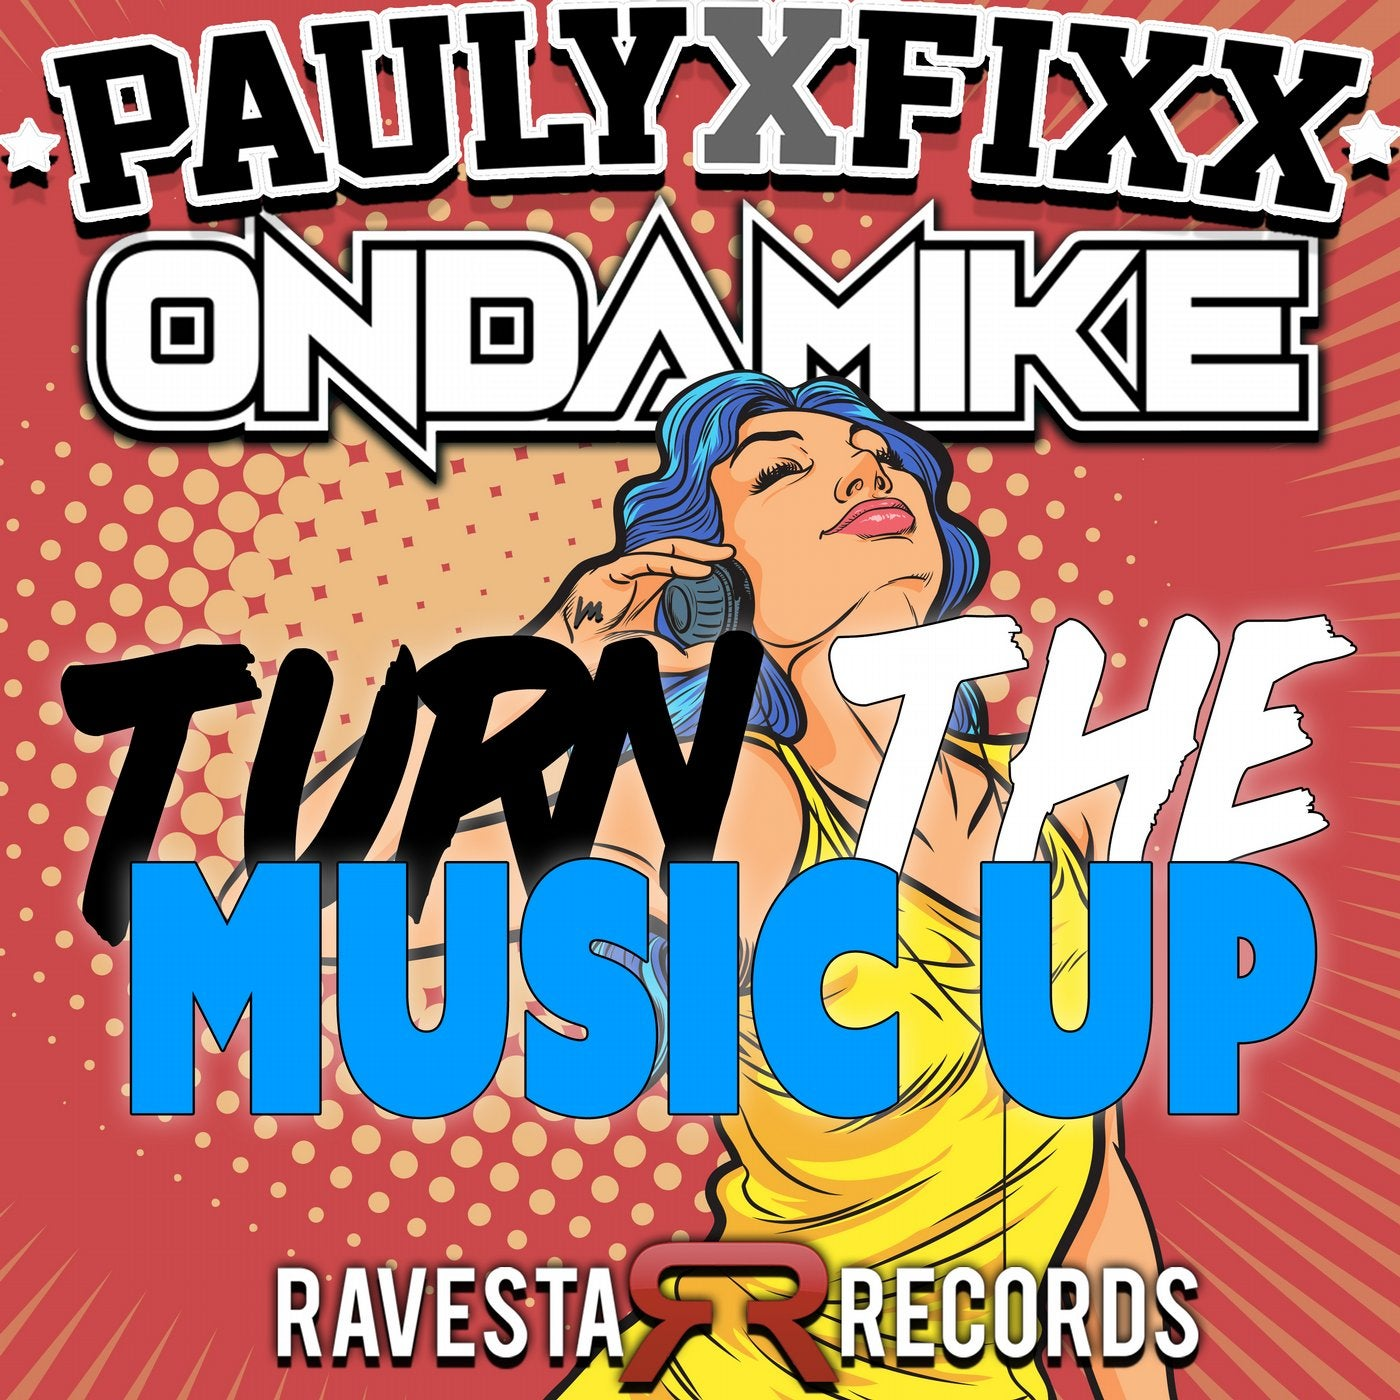 Turn The Music Up (Original Mix)